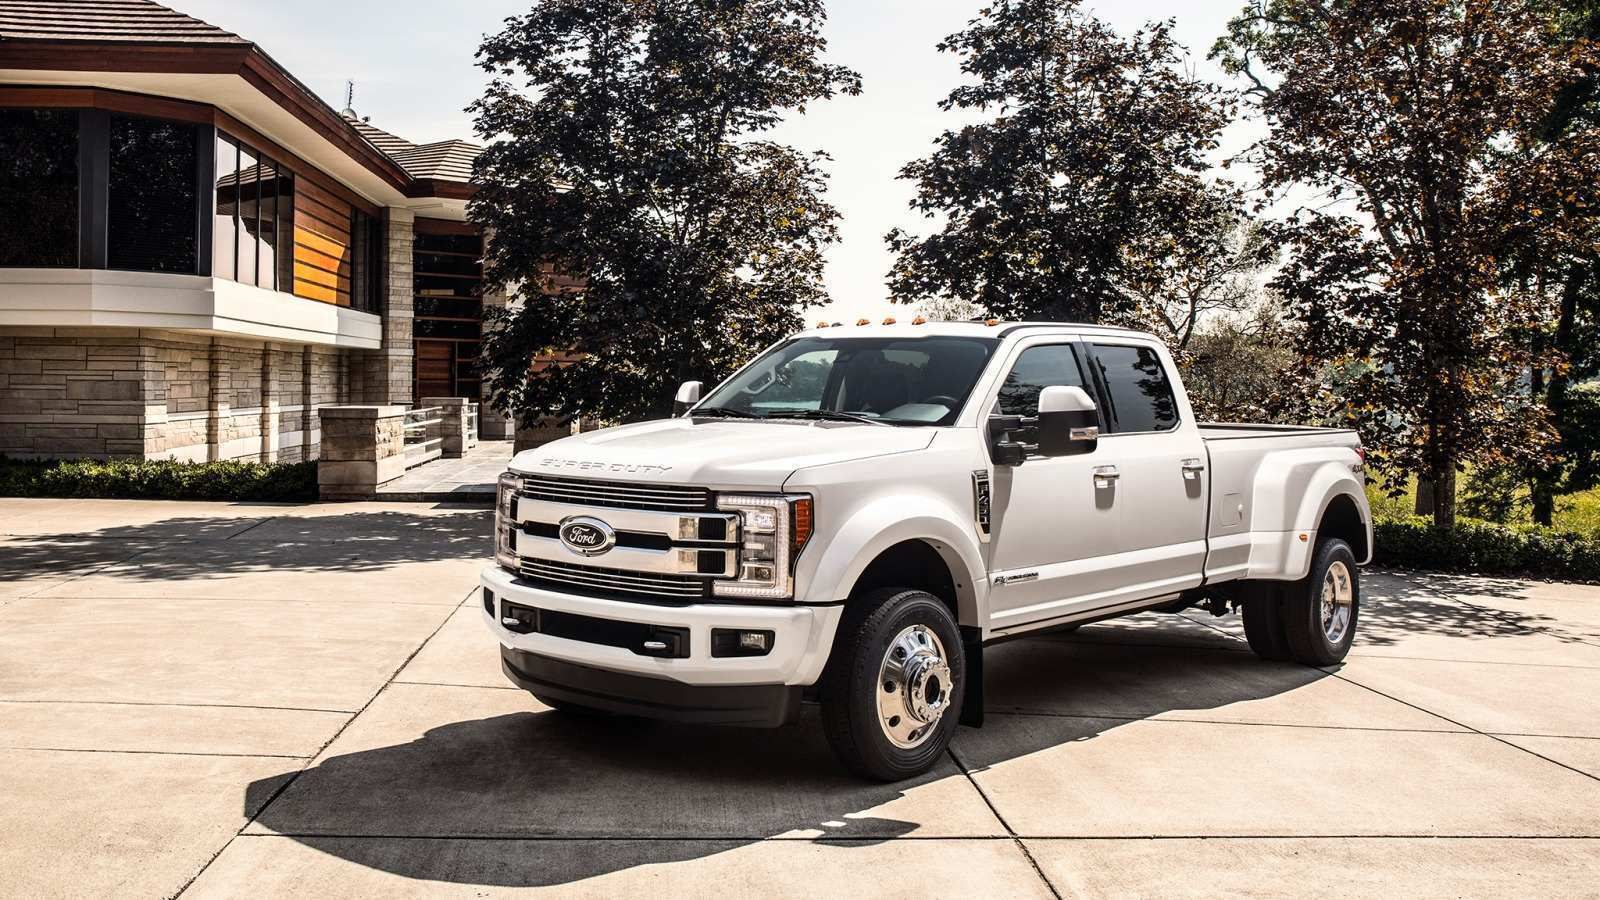 81 New 2019 Ford Hd Price for 2019 Ford Hd